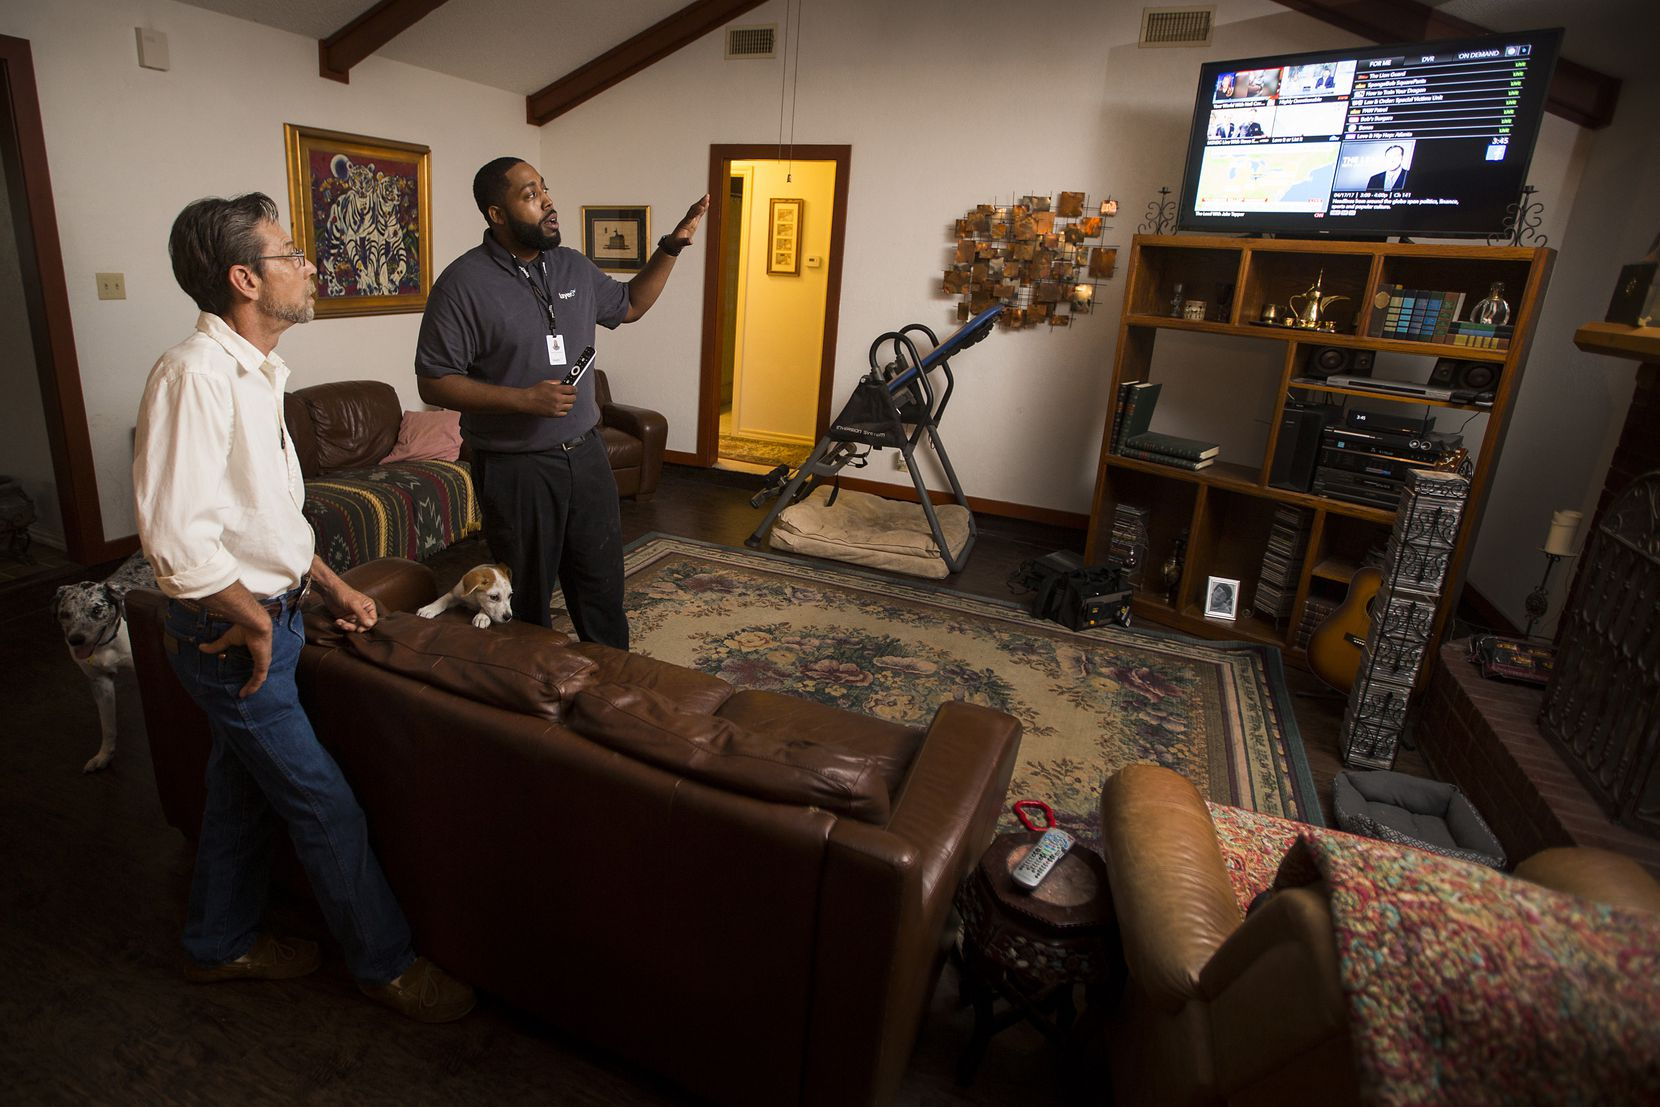 Stevan Grimes decided to switch to Layer3 after he got frustrated with his cable provider. He got walked through the operation of his new cable TV equipment by Keith Hamilton, a Layer3 technician.